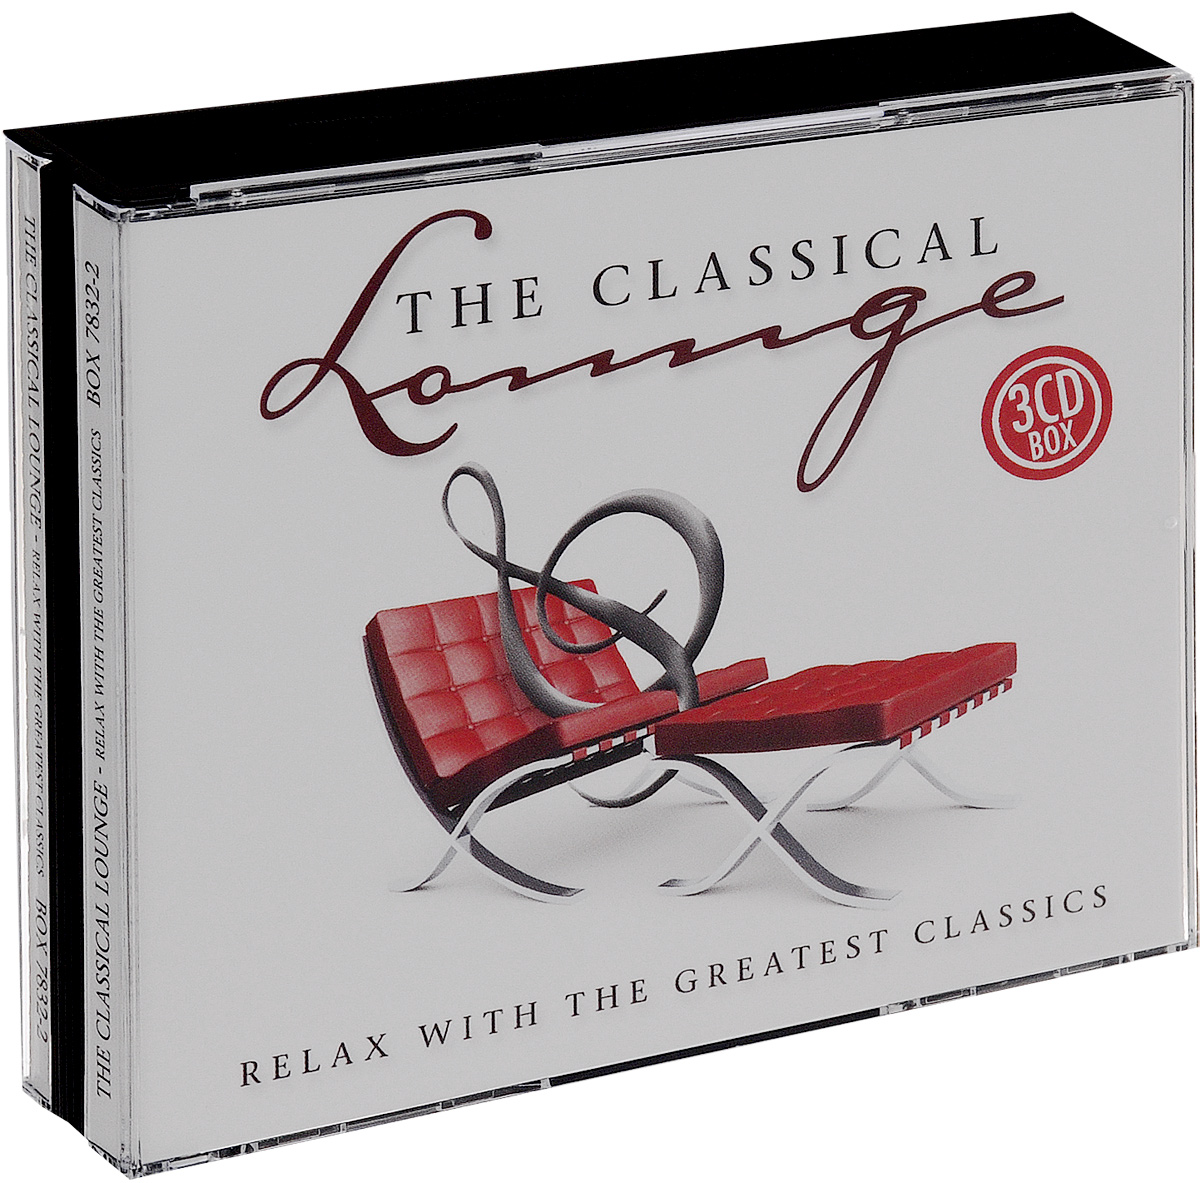 The Classical Lounge. Relax With Greatest Classics (3 CD) лонгслив printio дед мороз в трубе